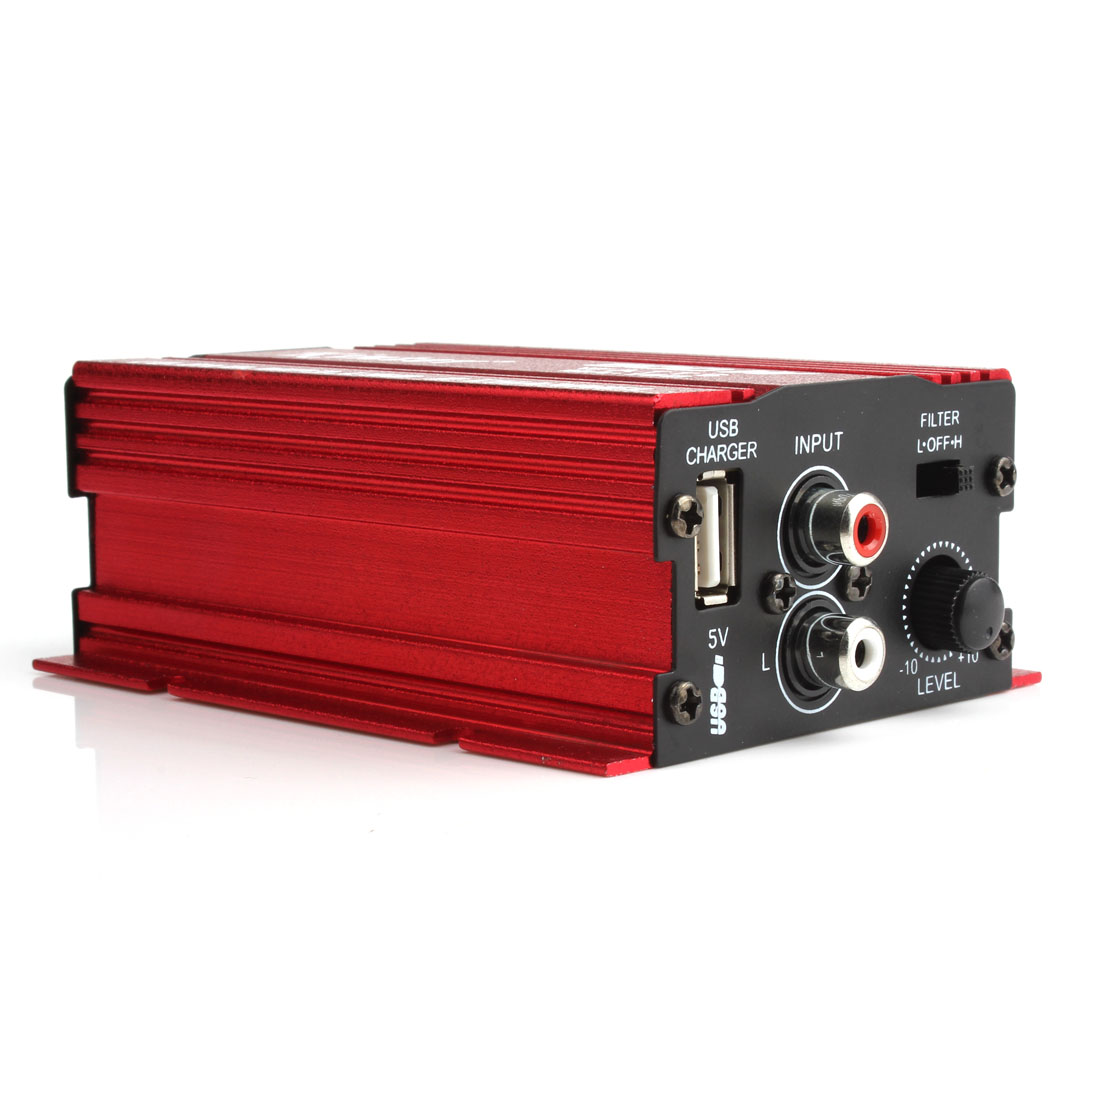 Mini-Hi-Fi-500W-2-Channel-Stereo-Audio-Amplifier-For-Car-Motorcycle-Home-New thumbnail 4